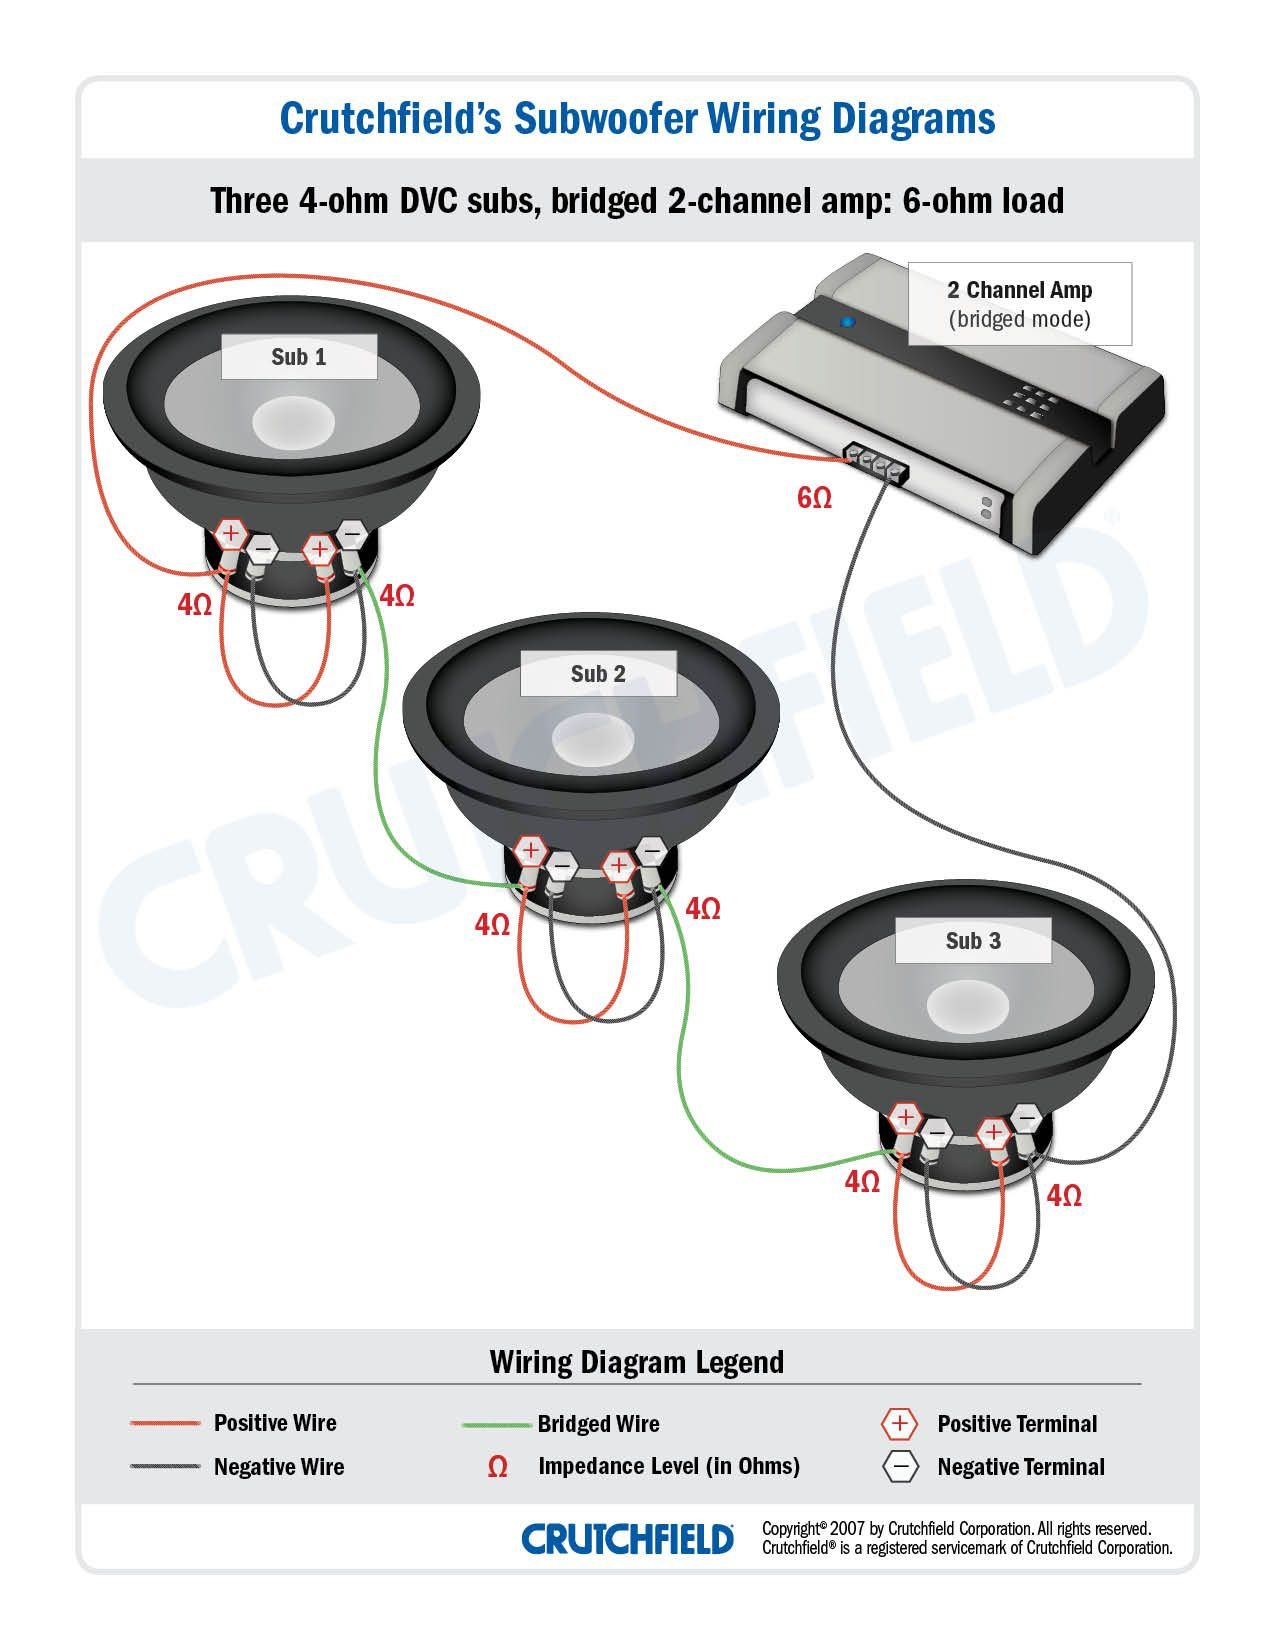 top 10 subwoofer wiring diagram free download 3 dvc 4 ohm 2 ch toptop 10 subwoofer wiring diagram free download 3 dvc 4 ohm 2 ch top 10 subwoofer wiring diagram free download wiring diagram